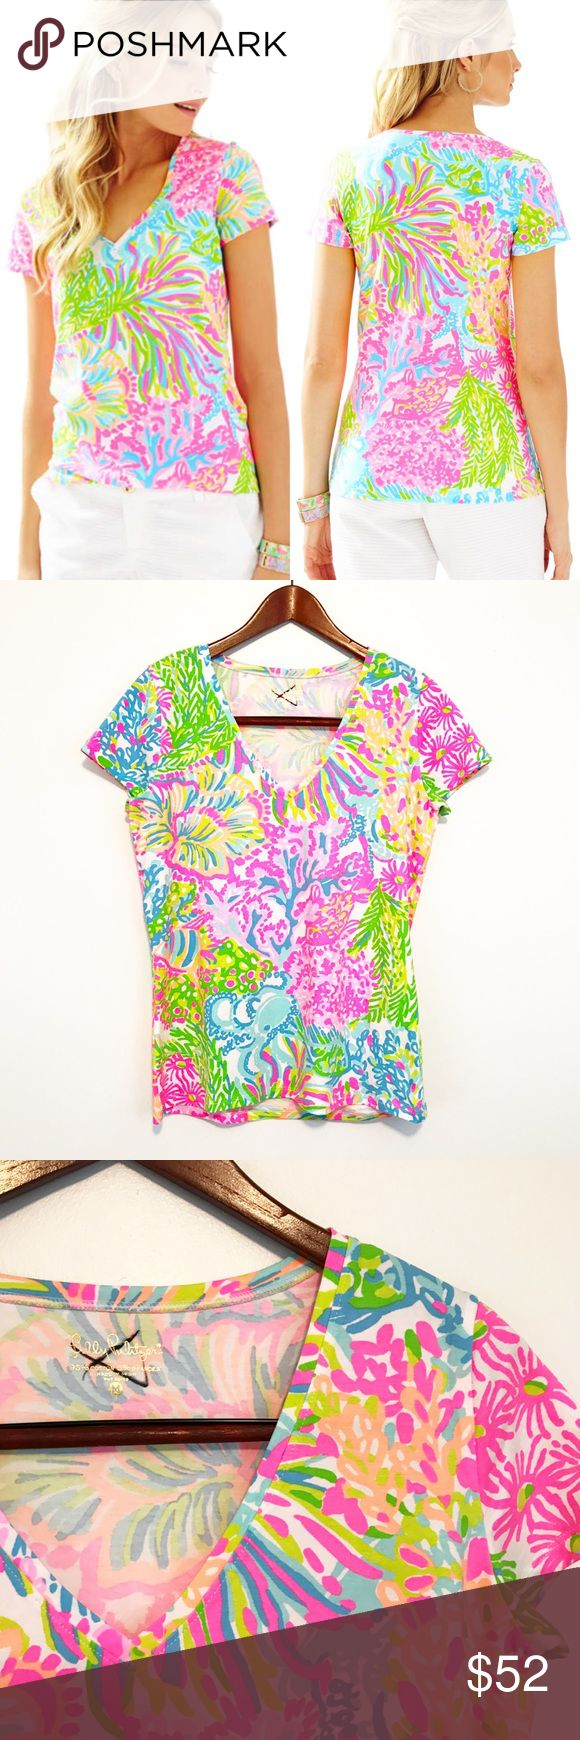 Lilly Pulitzer Lovers Coral Michelle Top Cotton Coral, octopus, and vibrant colors make this the perfect summer piece! Fun fact: annoyingly enough, the plural of octopus is actually octopuses instead of octopi. I know, it bothers me too. Anyways, the tag has been marked through on this one, but could possibly be removed if you're handier than I. (I have a reputation for ruining what I try to fix so I leave it the pros now. 🤷🏼♀️) Lilly Pulitzer Tops Tees - Short Sleeve